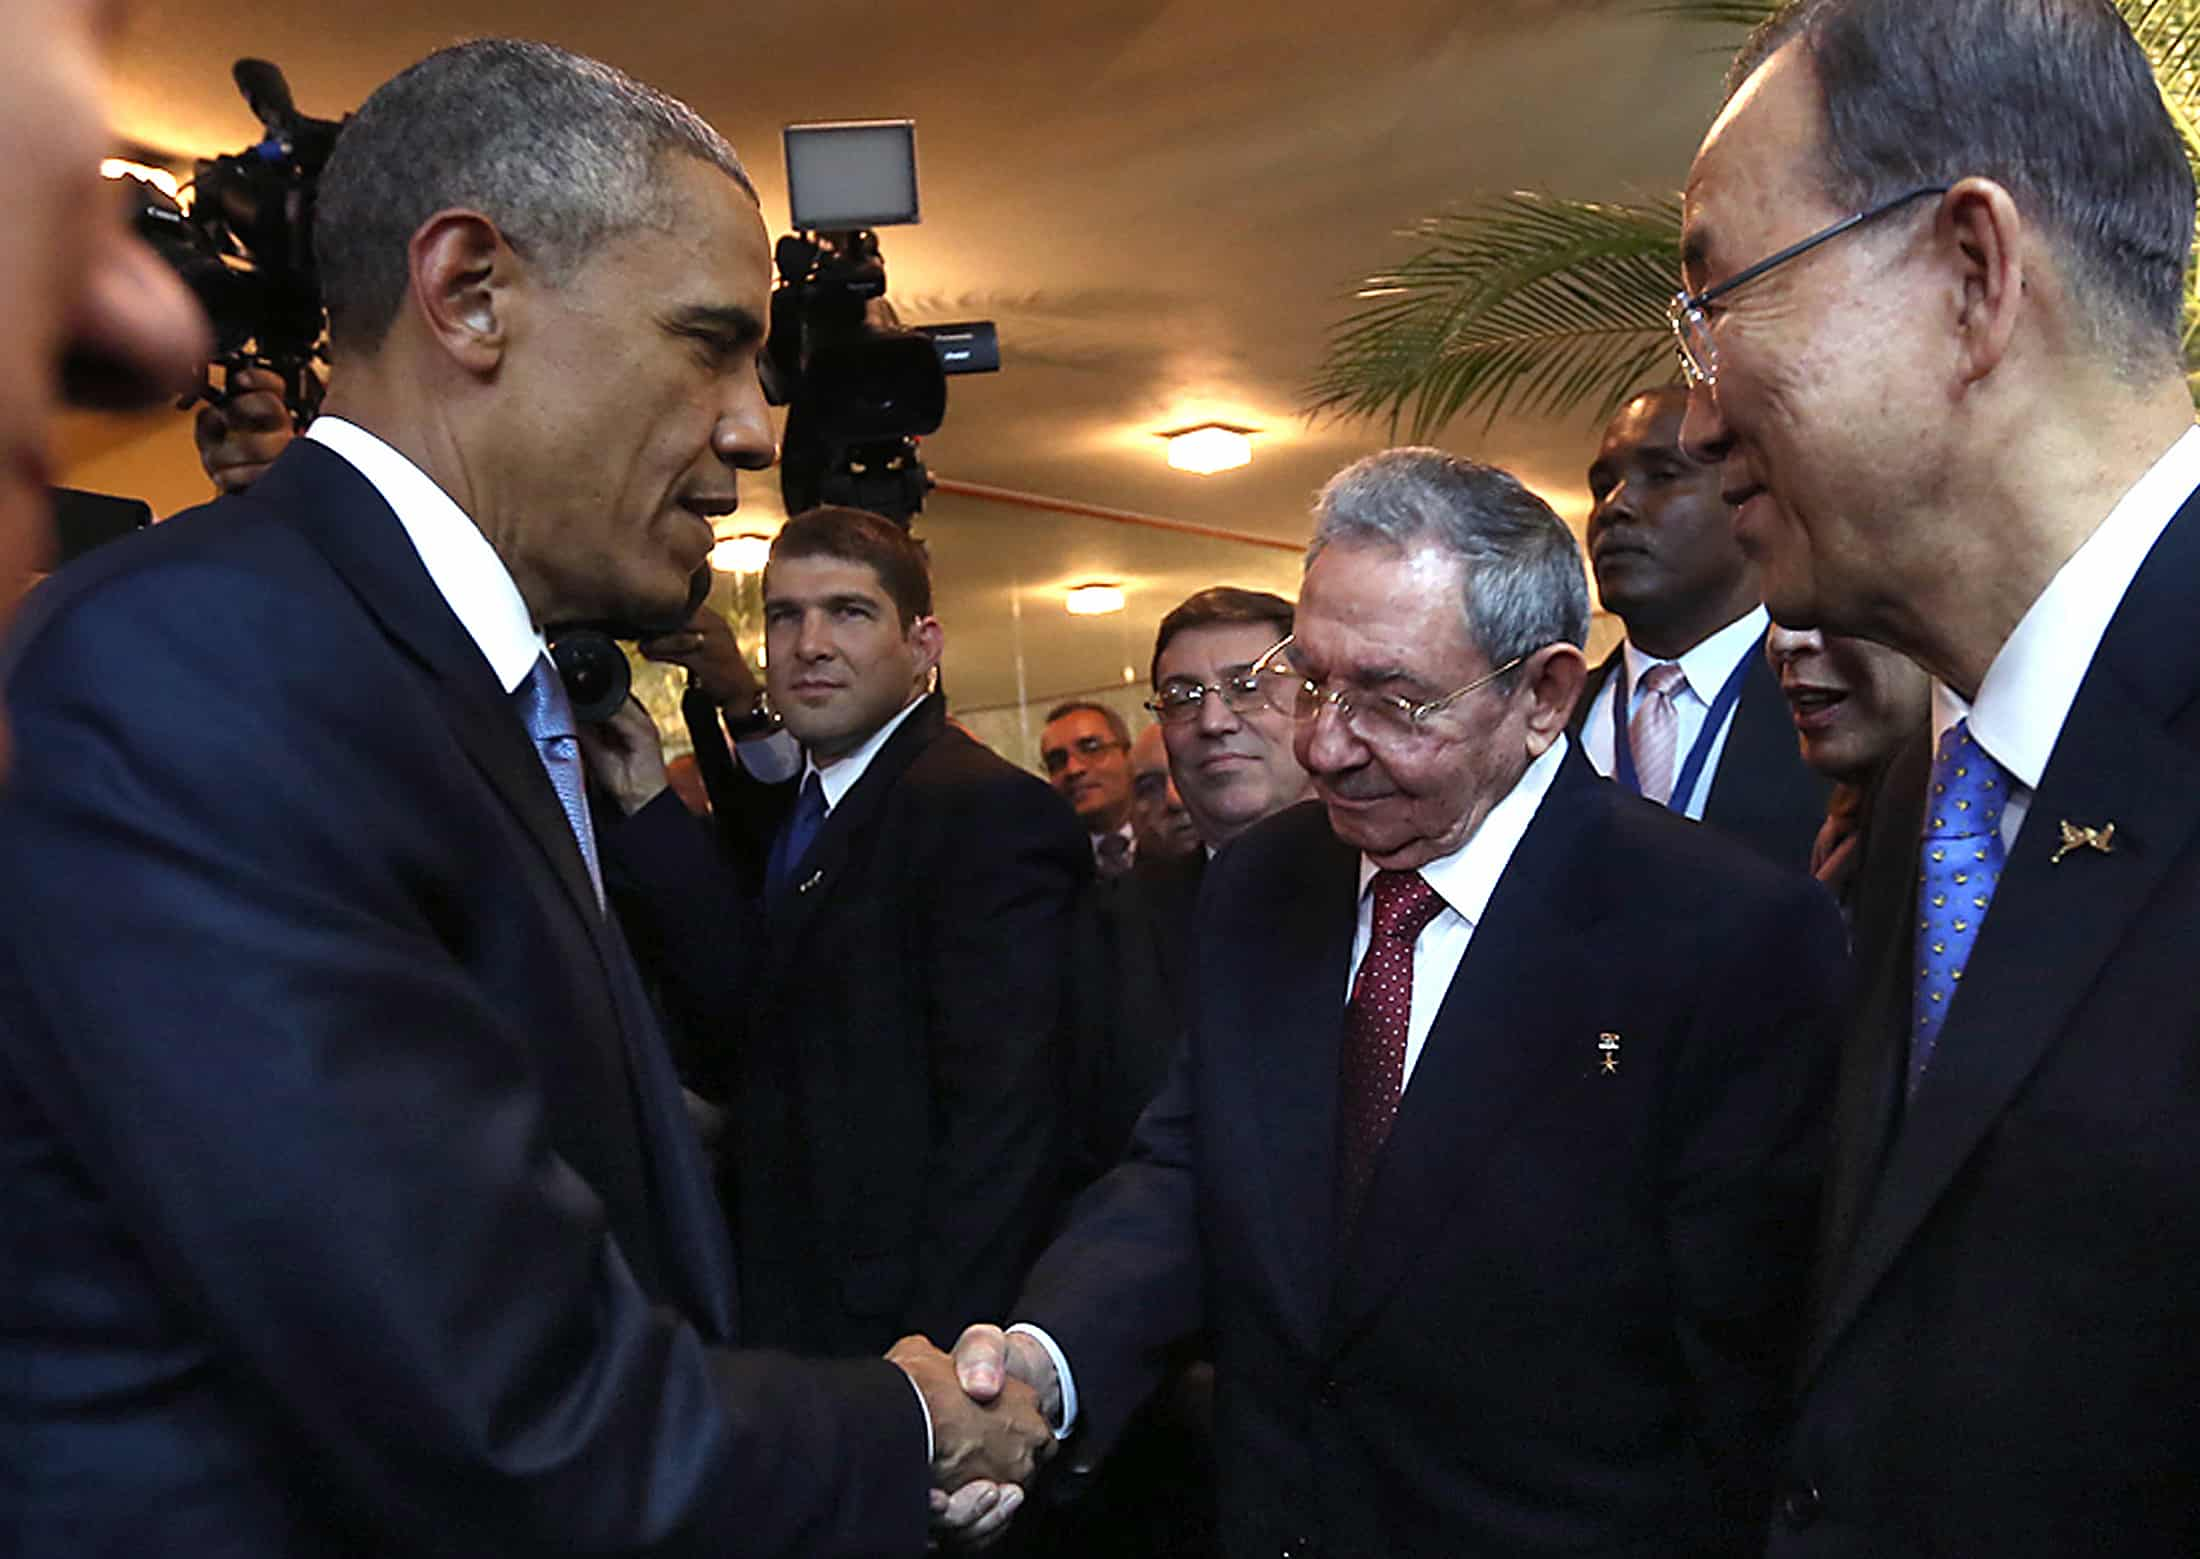 Cuban President Raúl Castro, second right, and U.S. President Barack Obama, left, shake hands.